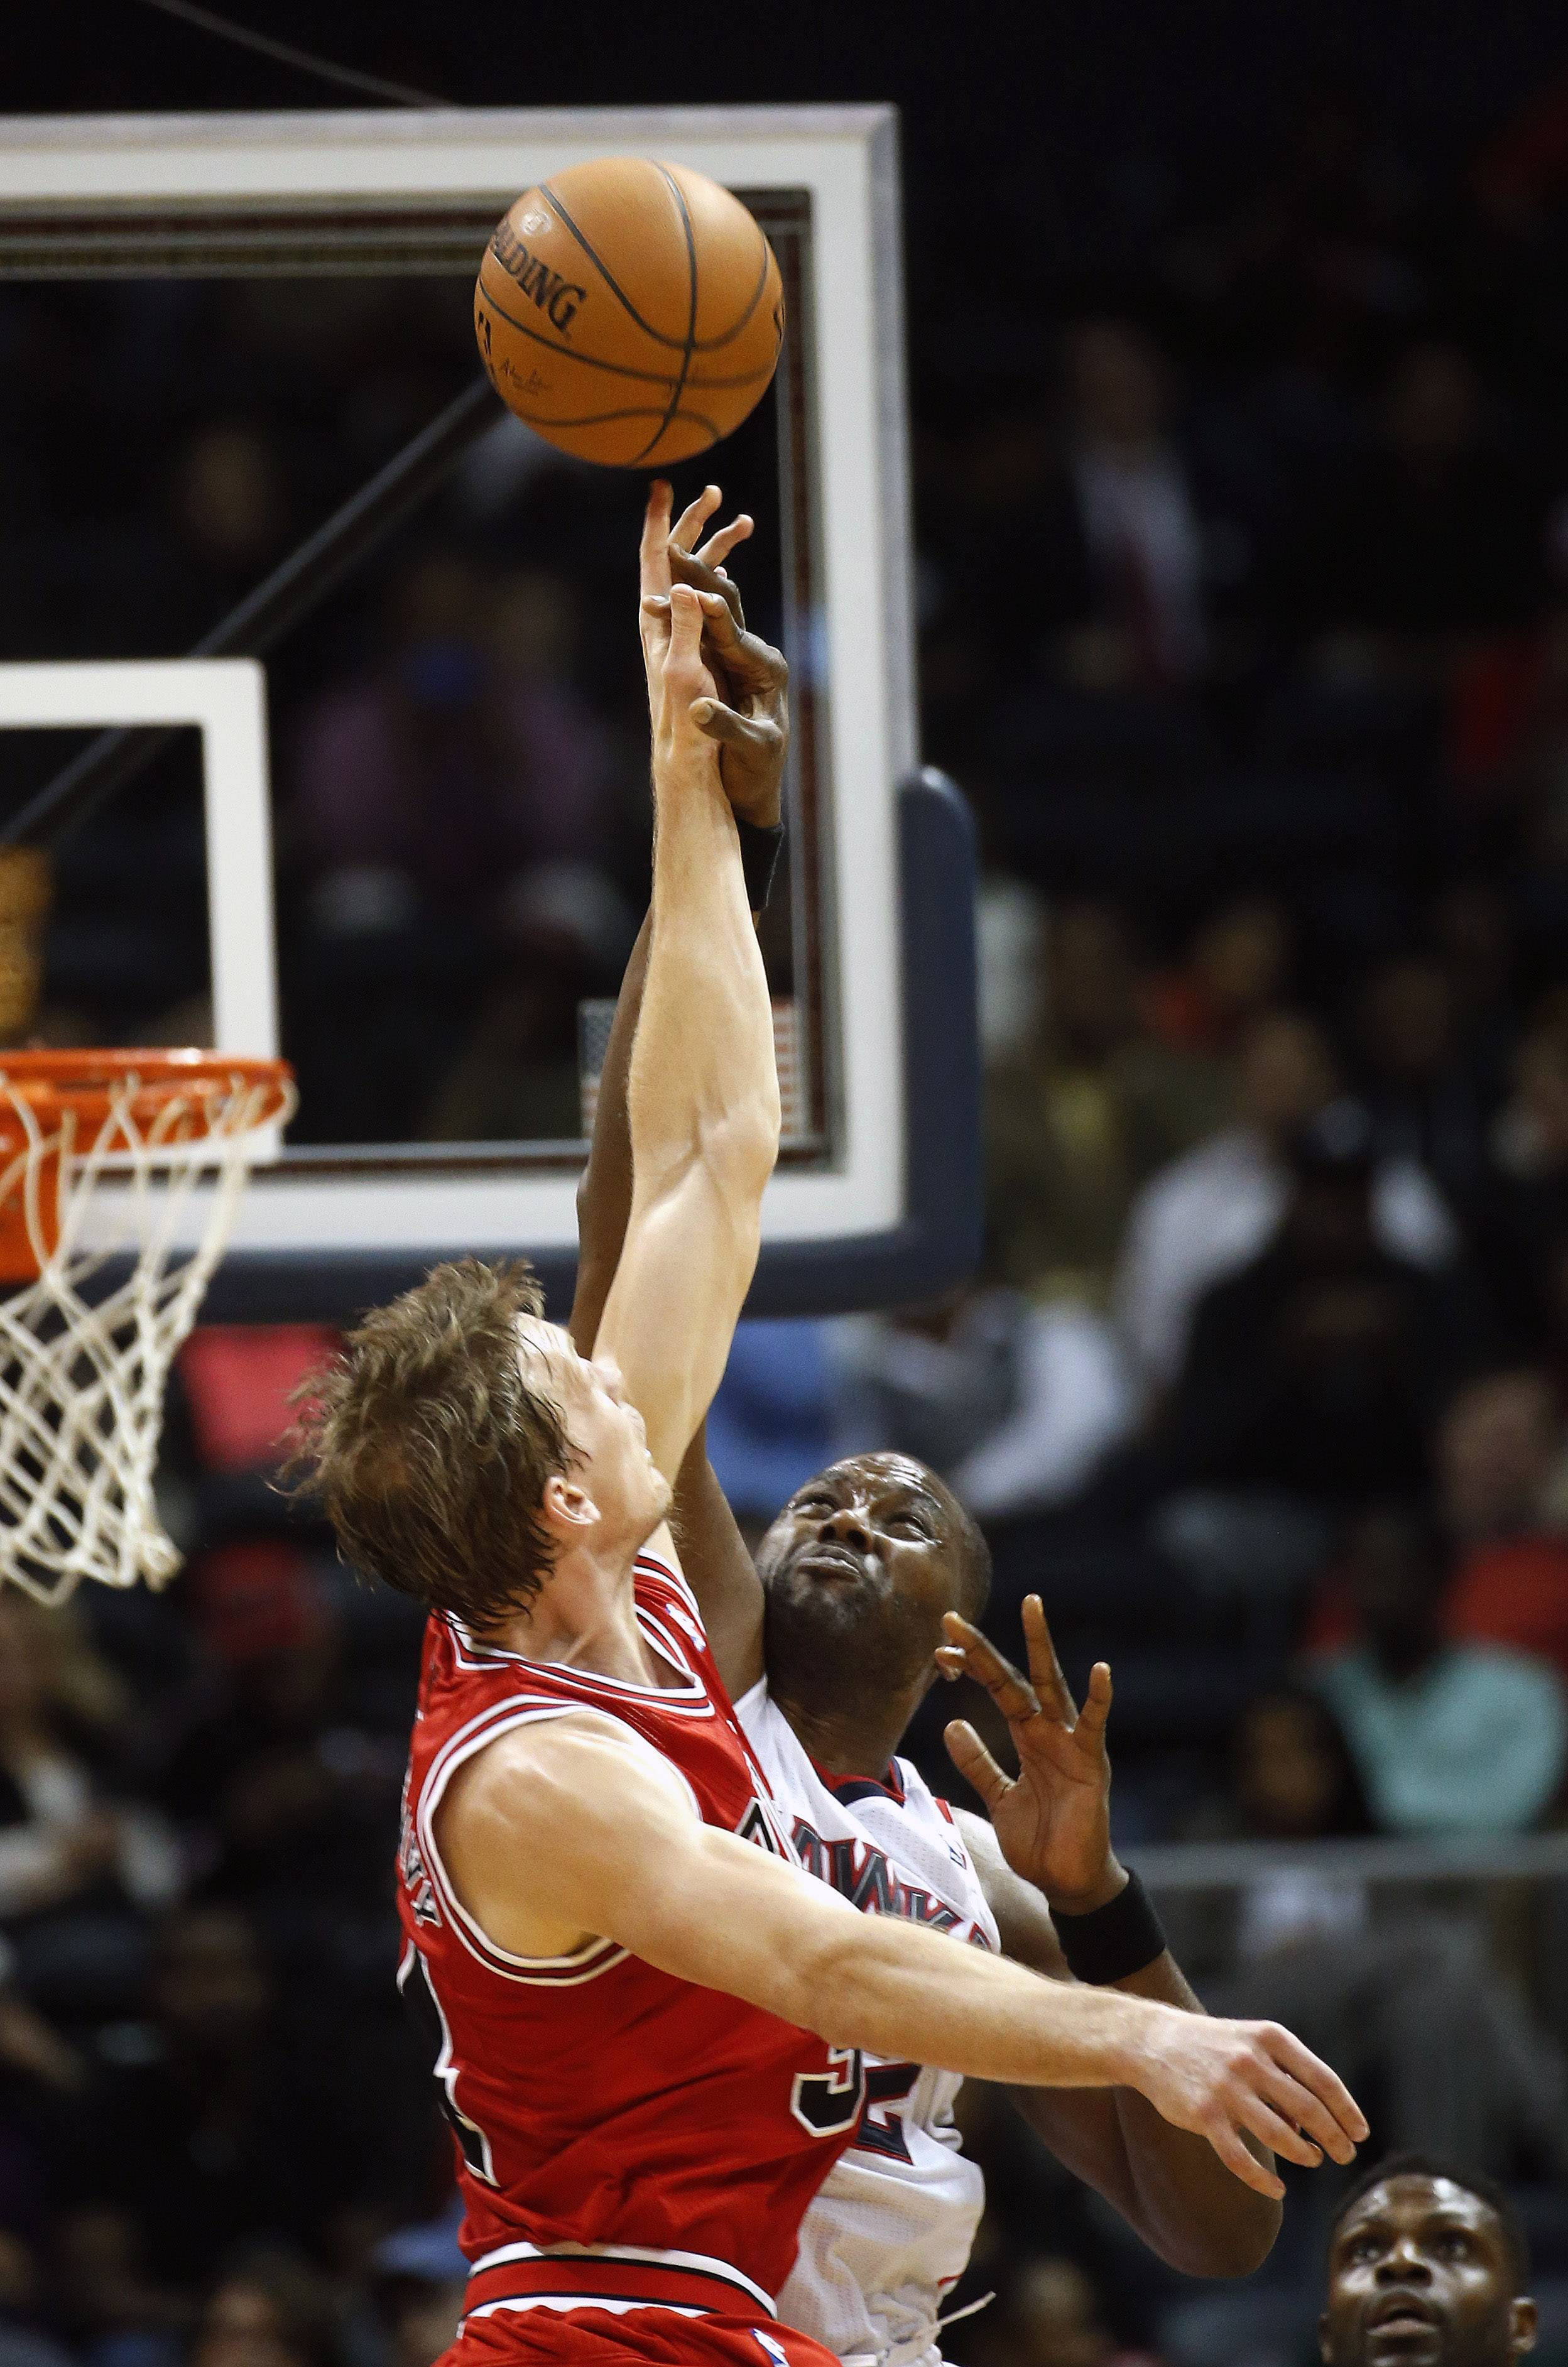 Atlanta Hawks power forward Elton Brand (42) and Chicago Bulls small forward Mike Dunleavy (34) battle for control on a jump ball in the first half of an NBA basketball game  Tuesday, Feb. 25, 2014, in Atlanta.